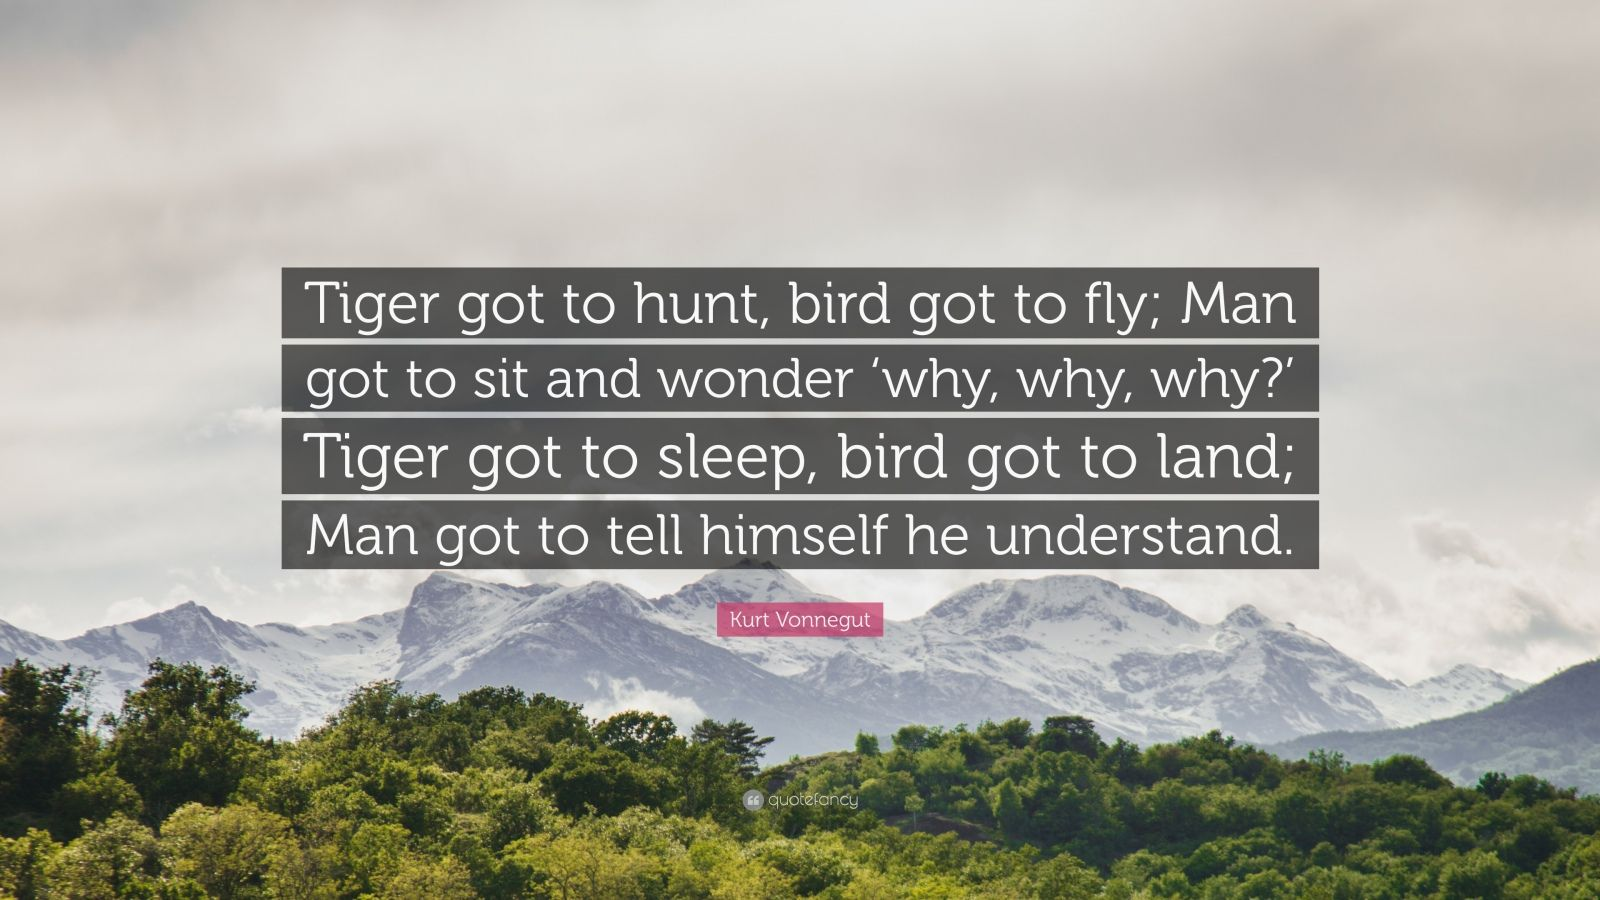 """Kurt Vonnegut Quote: """"Tiger got to hunt, bird got to fly; Man got to sit and wonder 'why, why, why?' Tiger got to sleep, bird got to land; Man got to tell himself he understand."""""""